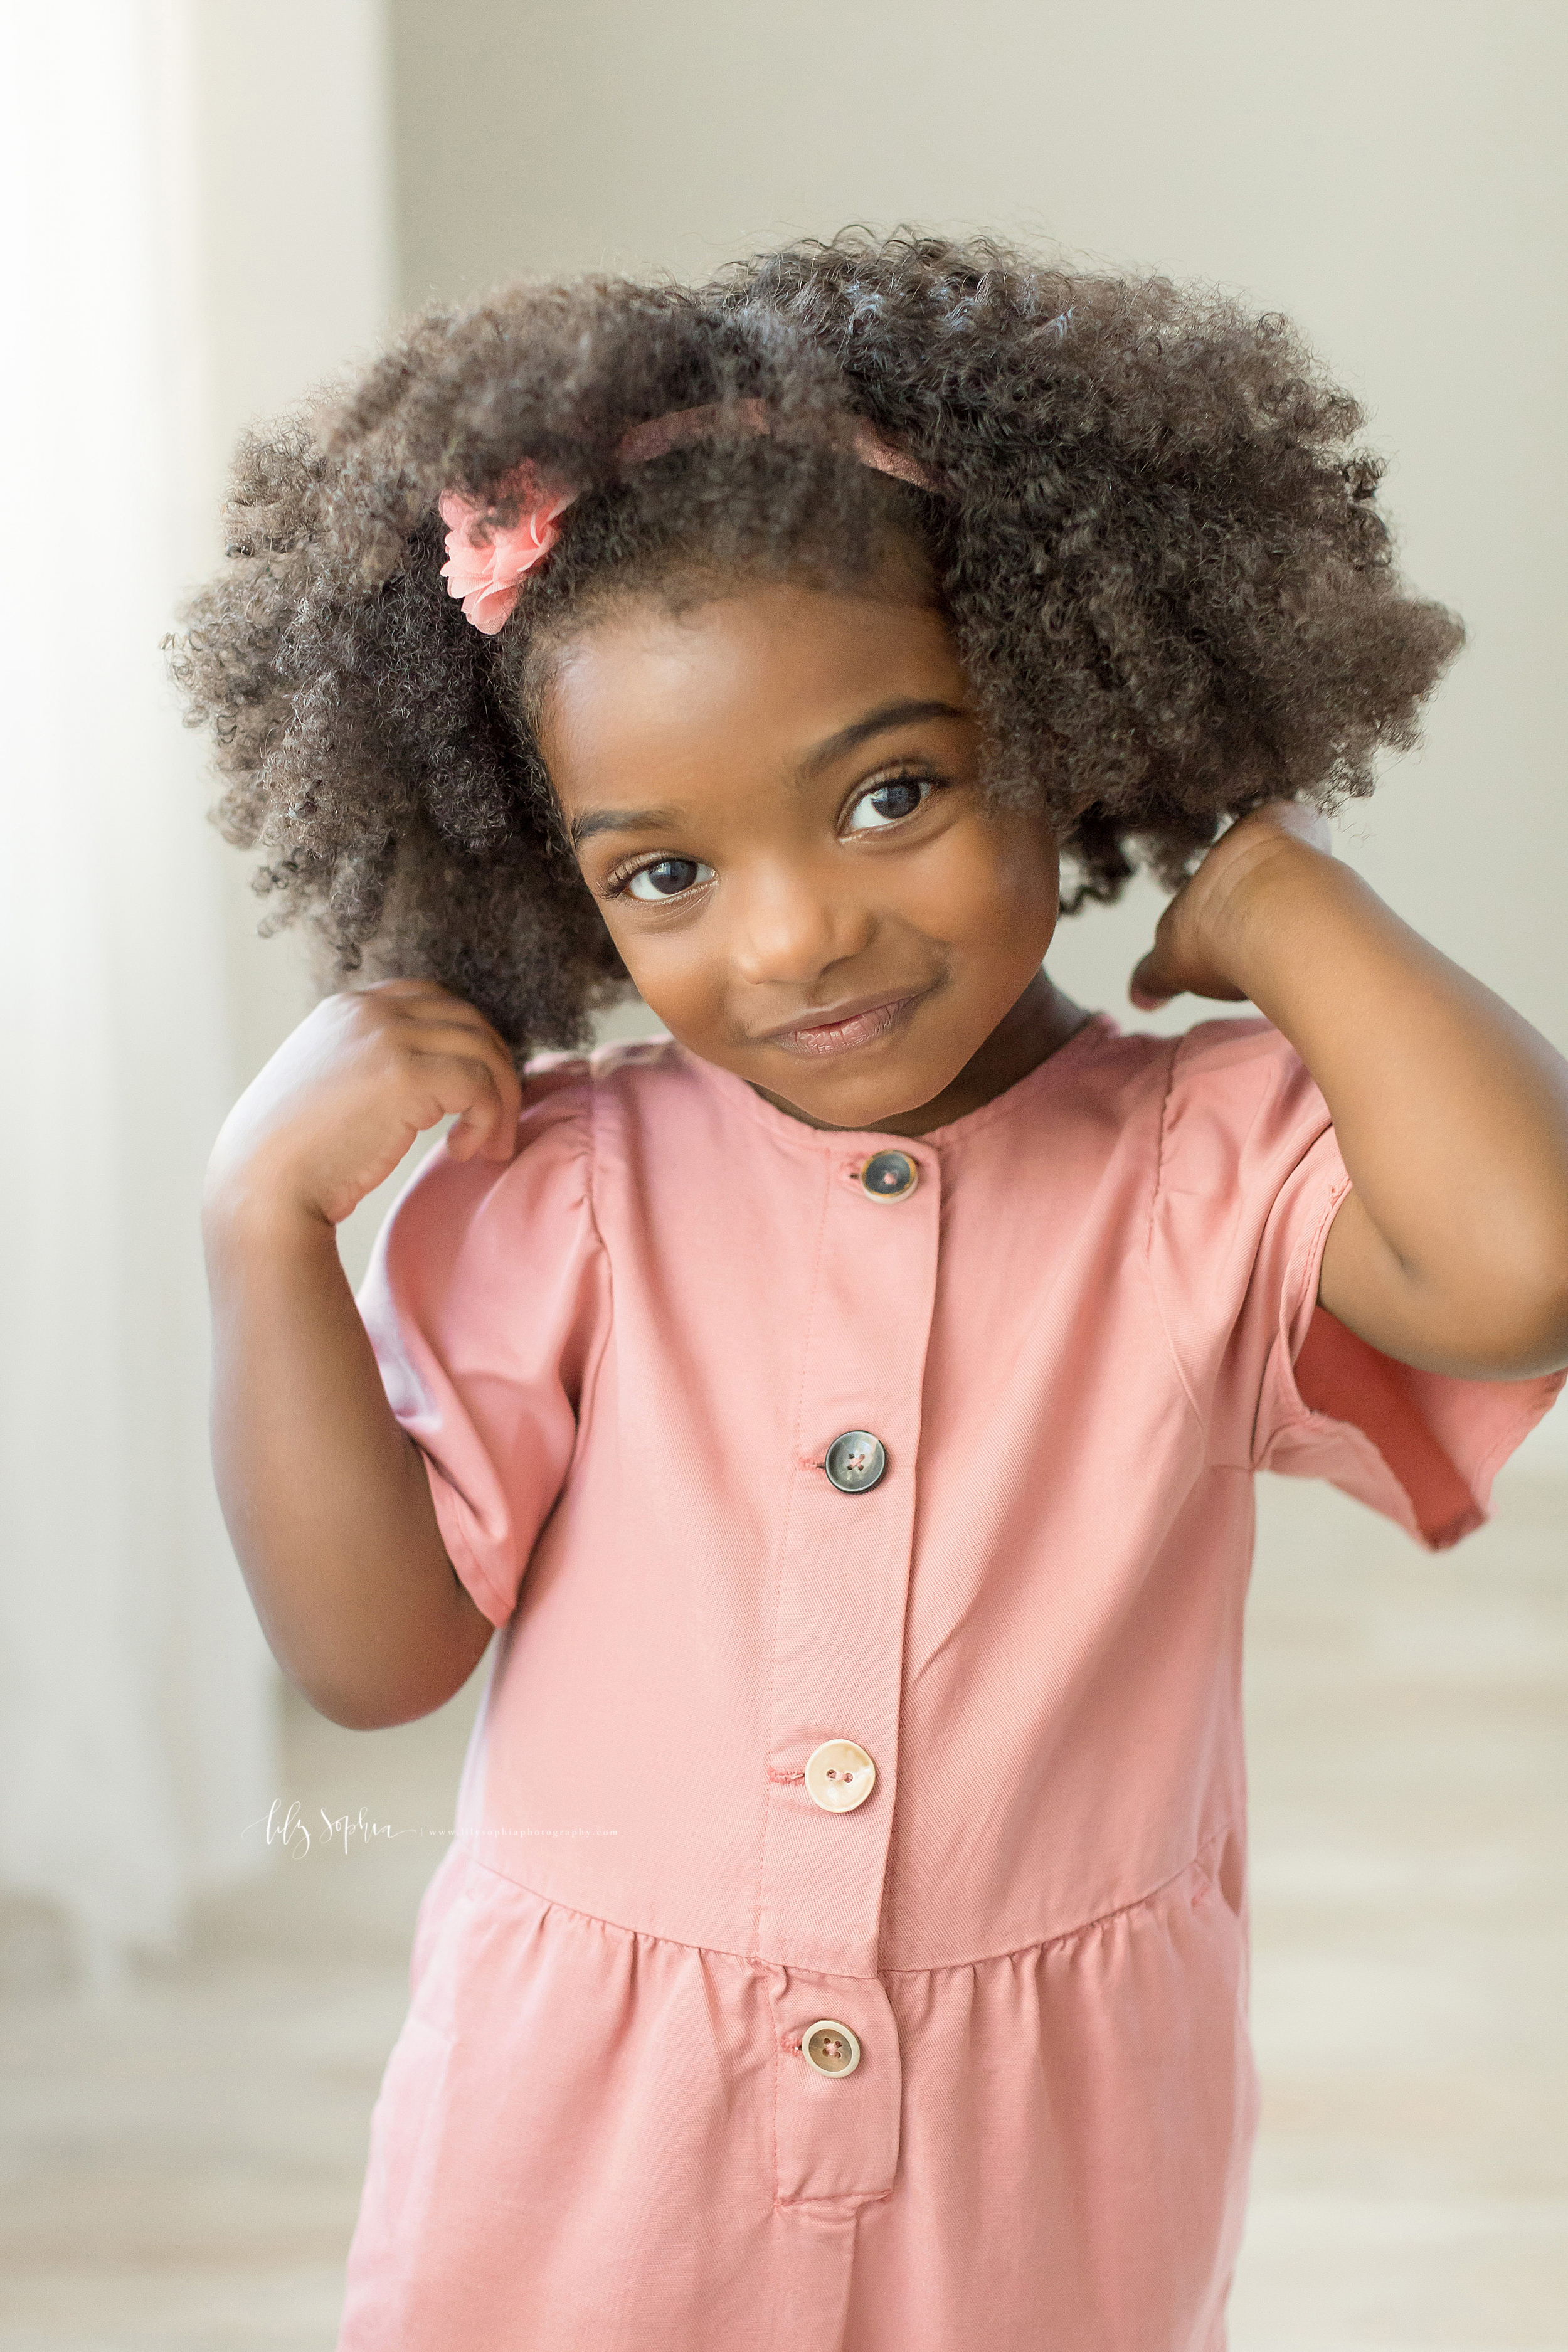 atlanta-midtown-brookhaven-ashford-dunwoody-virginia-highlands-roswell-decatur-lily-sophia-photography-milestone-sisters-child-portraits-_0679.jpg